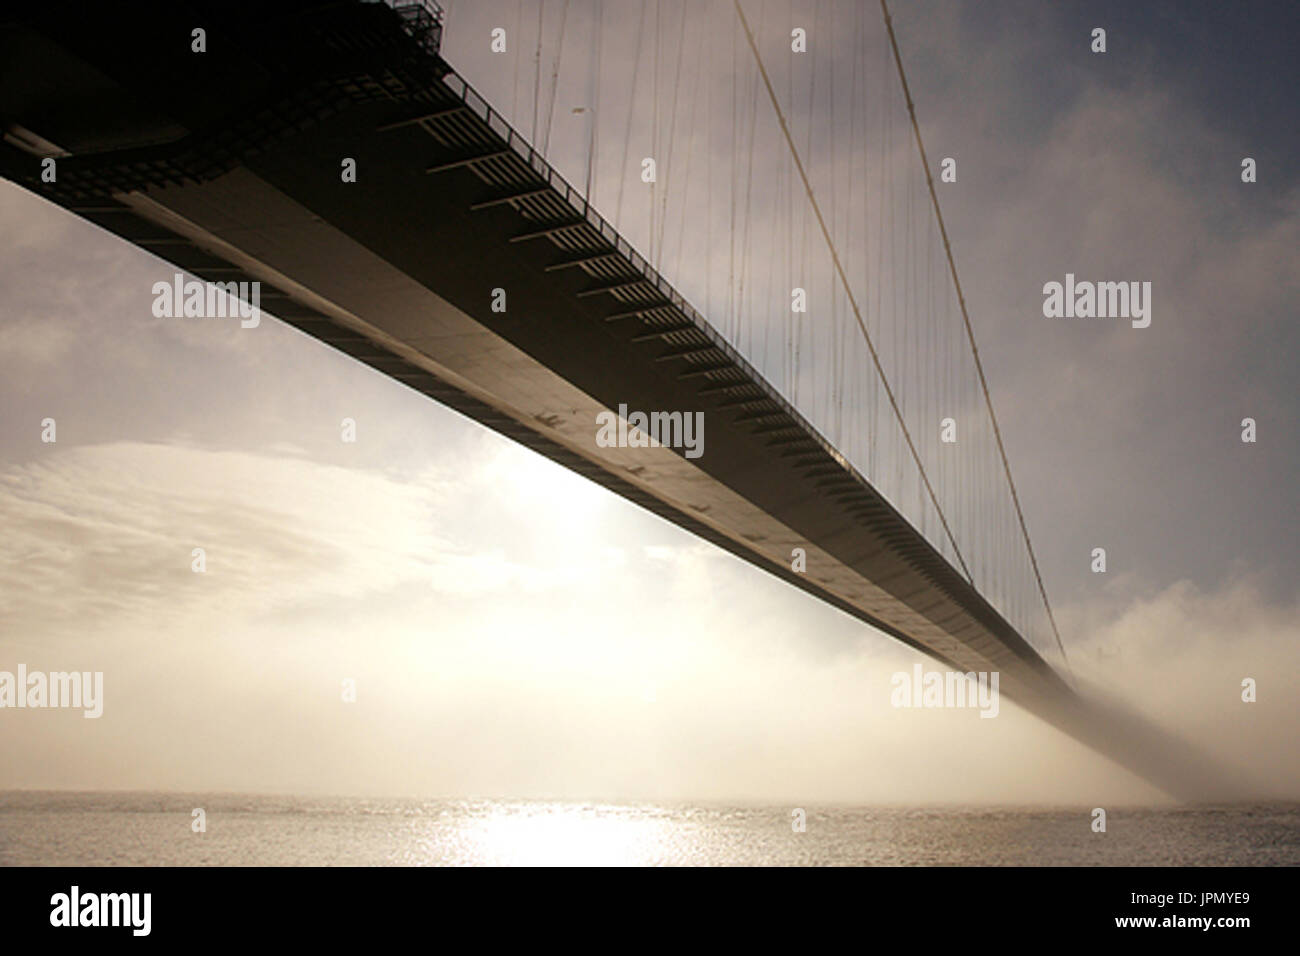 Humber bridge in fog bank, Art, humber estuary - Stock Image